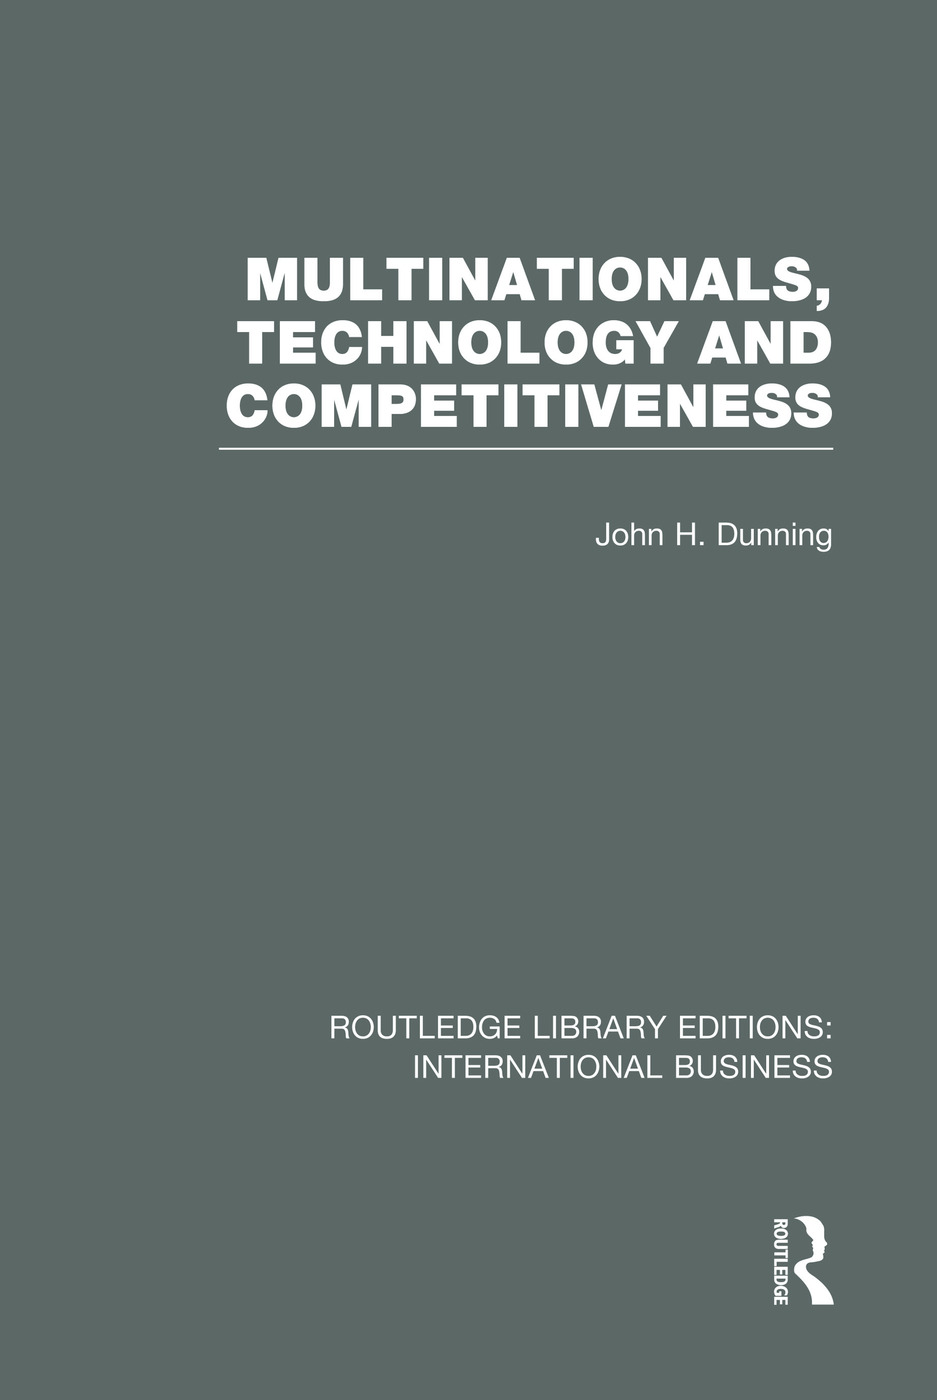 Multinationals, Technology & Competitiveness (RLE International Business) book cover